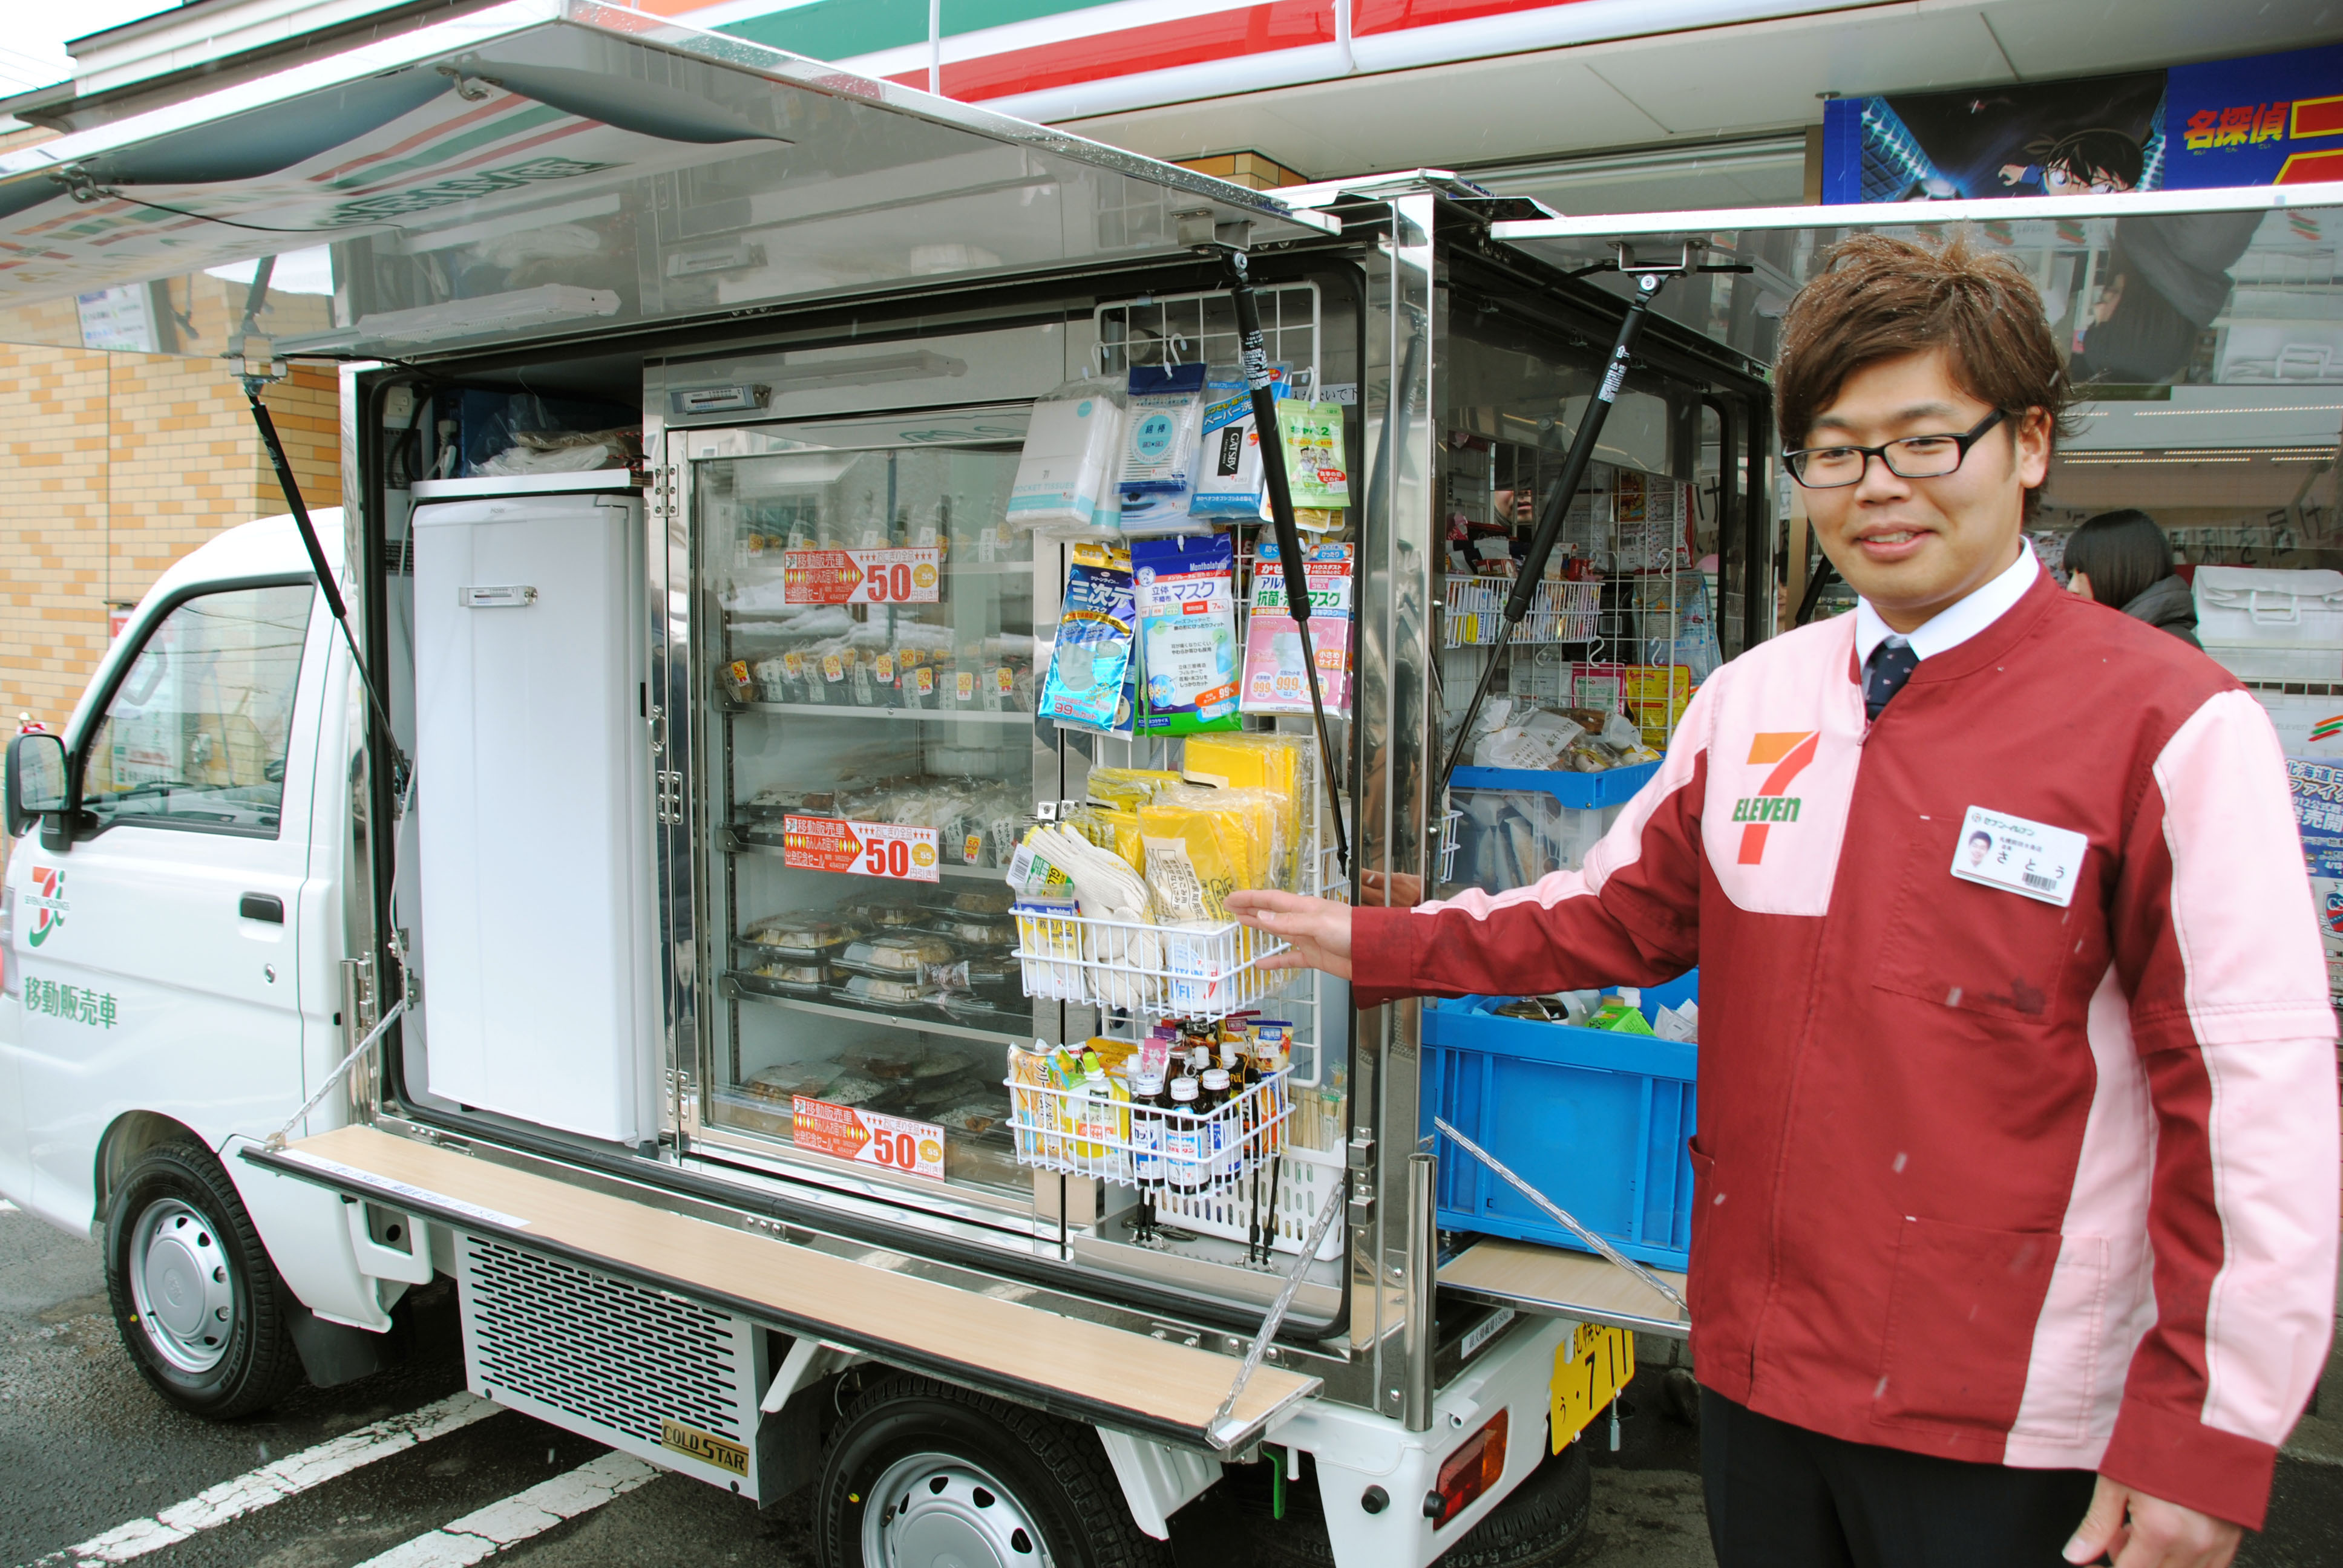 Calling on customers: A 7-Eleven employee shows items sold from its mobile store in Sapporo on March 22, when the chain launched the service there. | KYODO